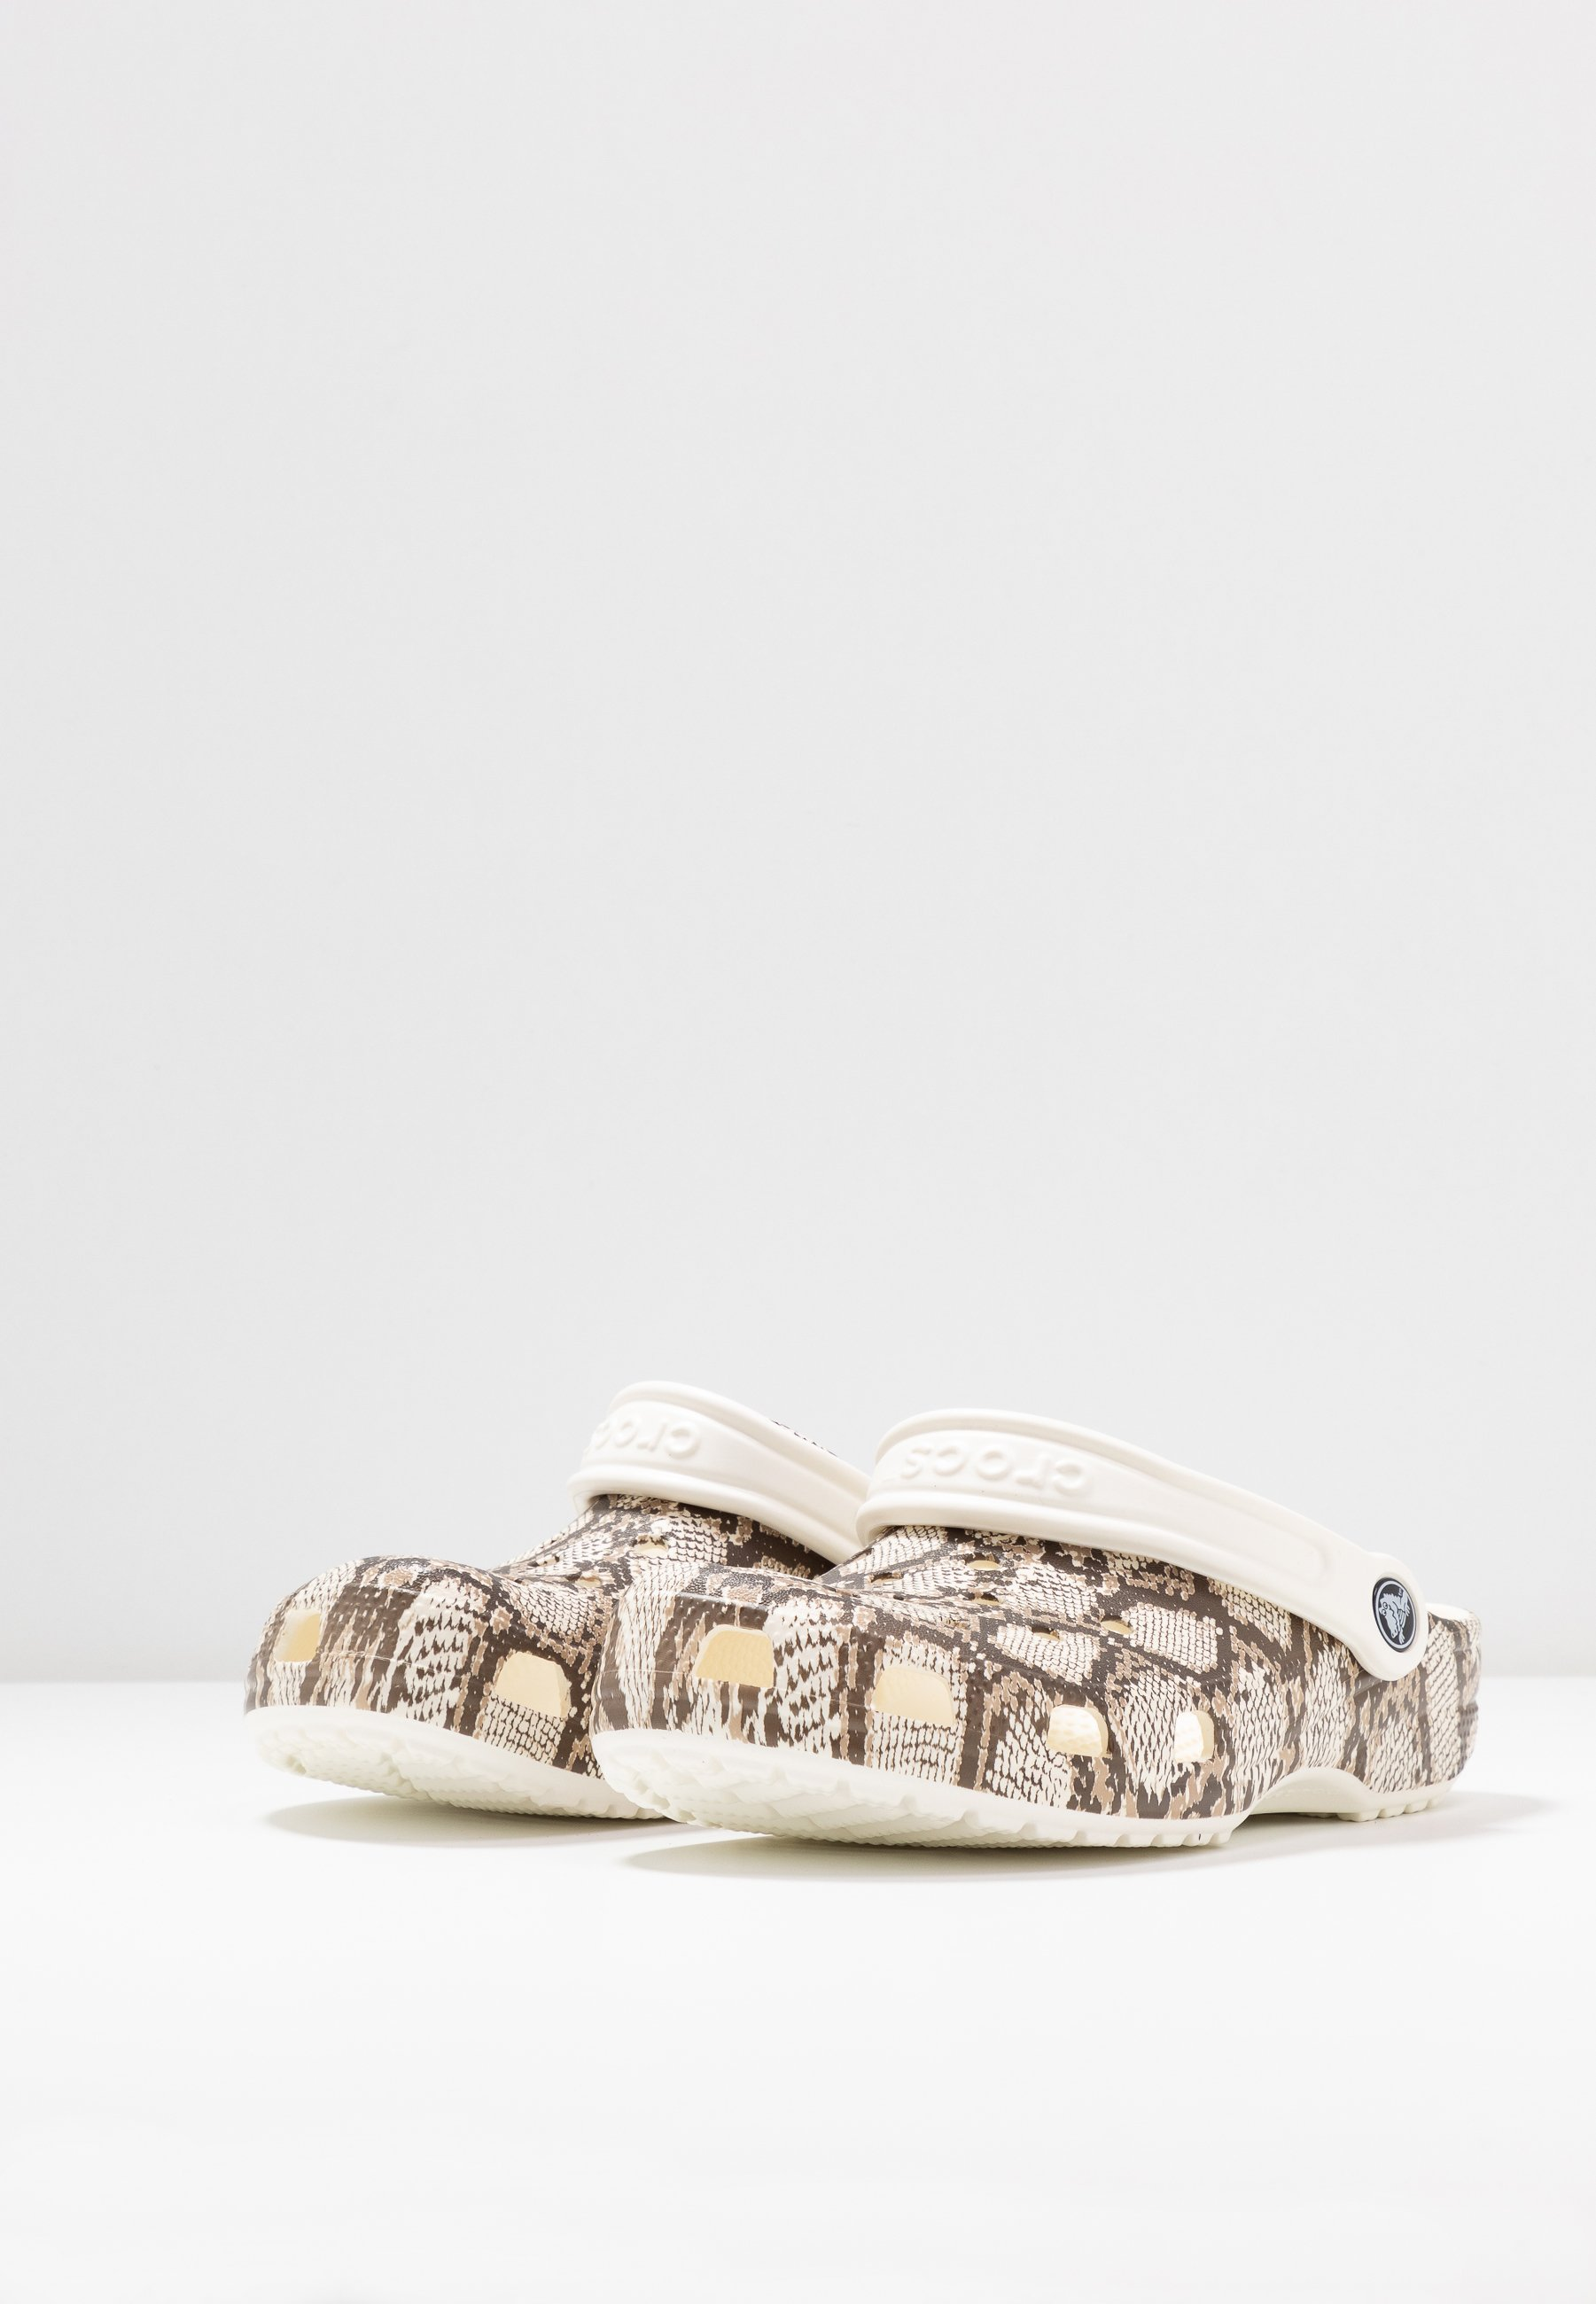 Crocs CLASSIC SNAKE PRINT - Chaussons - oyster/mushroom